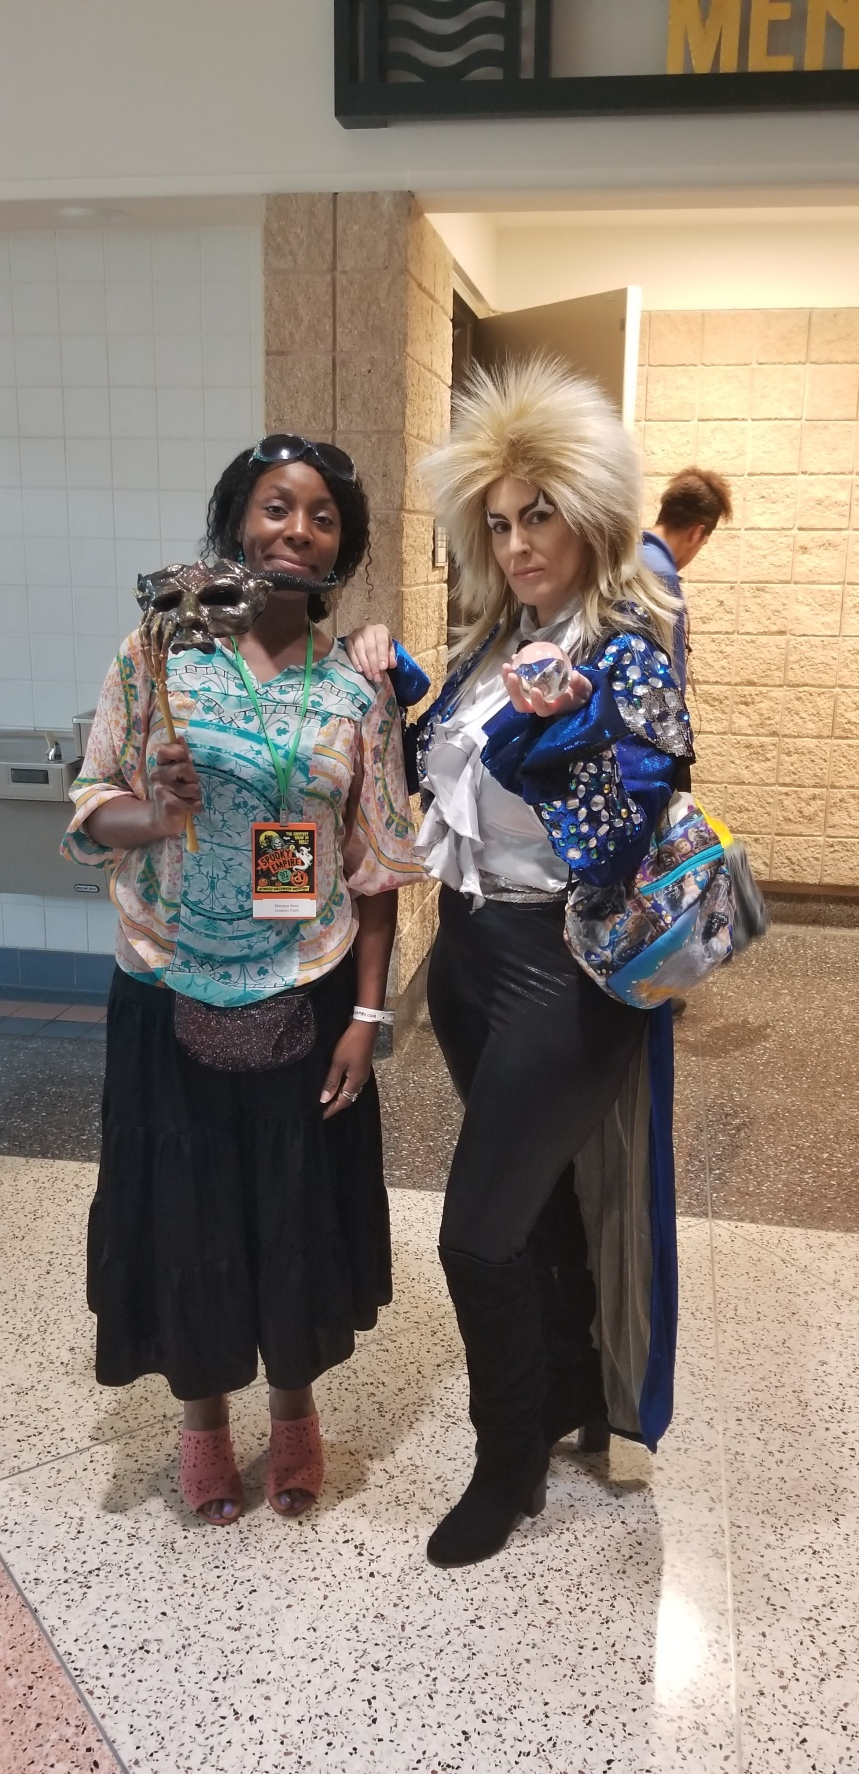 Spooky Empire_Labyrinth